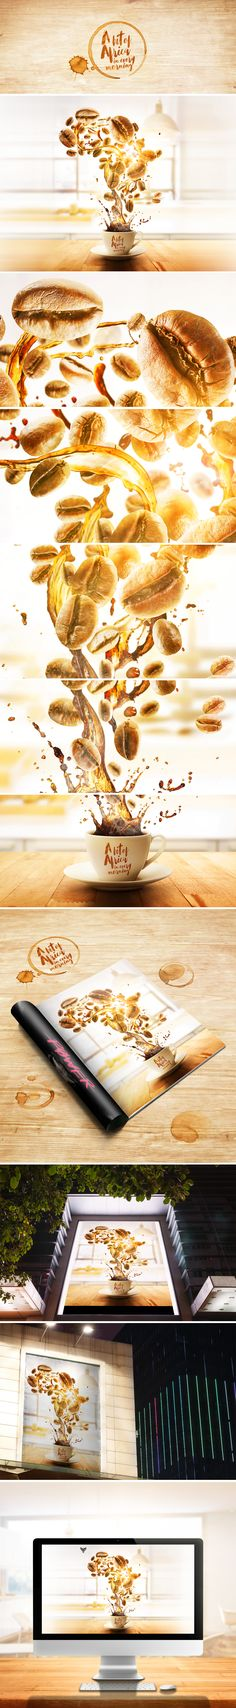 A bit of Africa in every morning on Behance